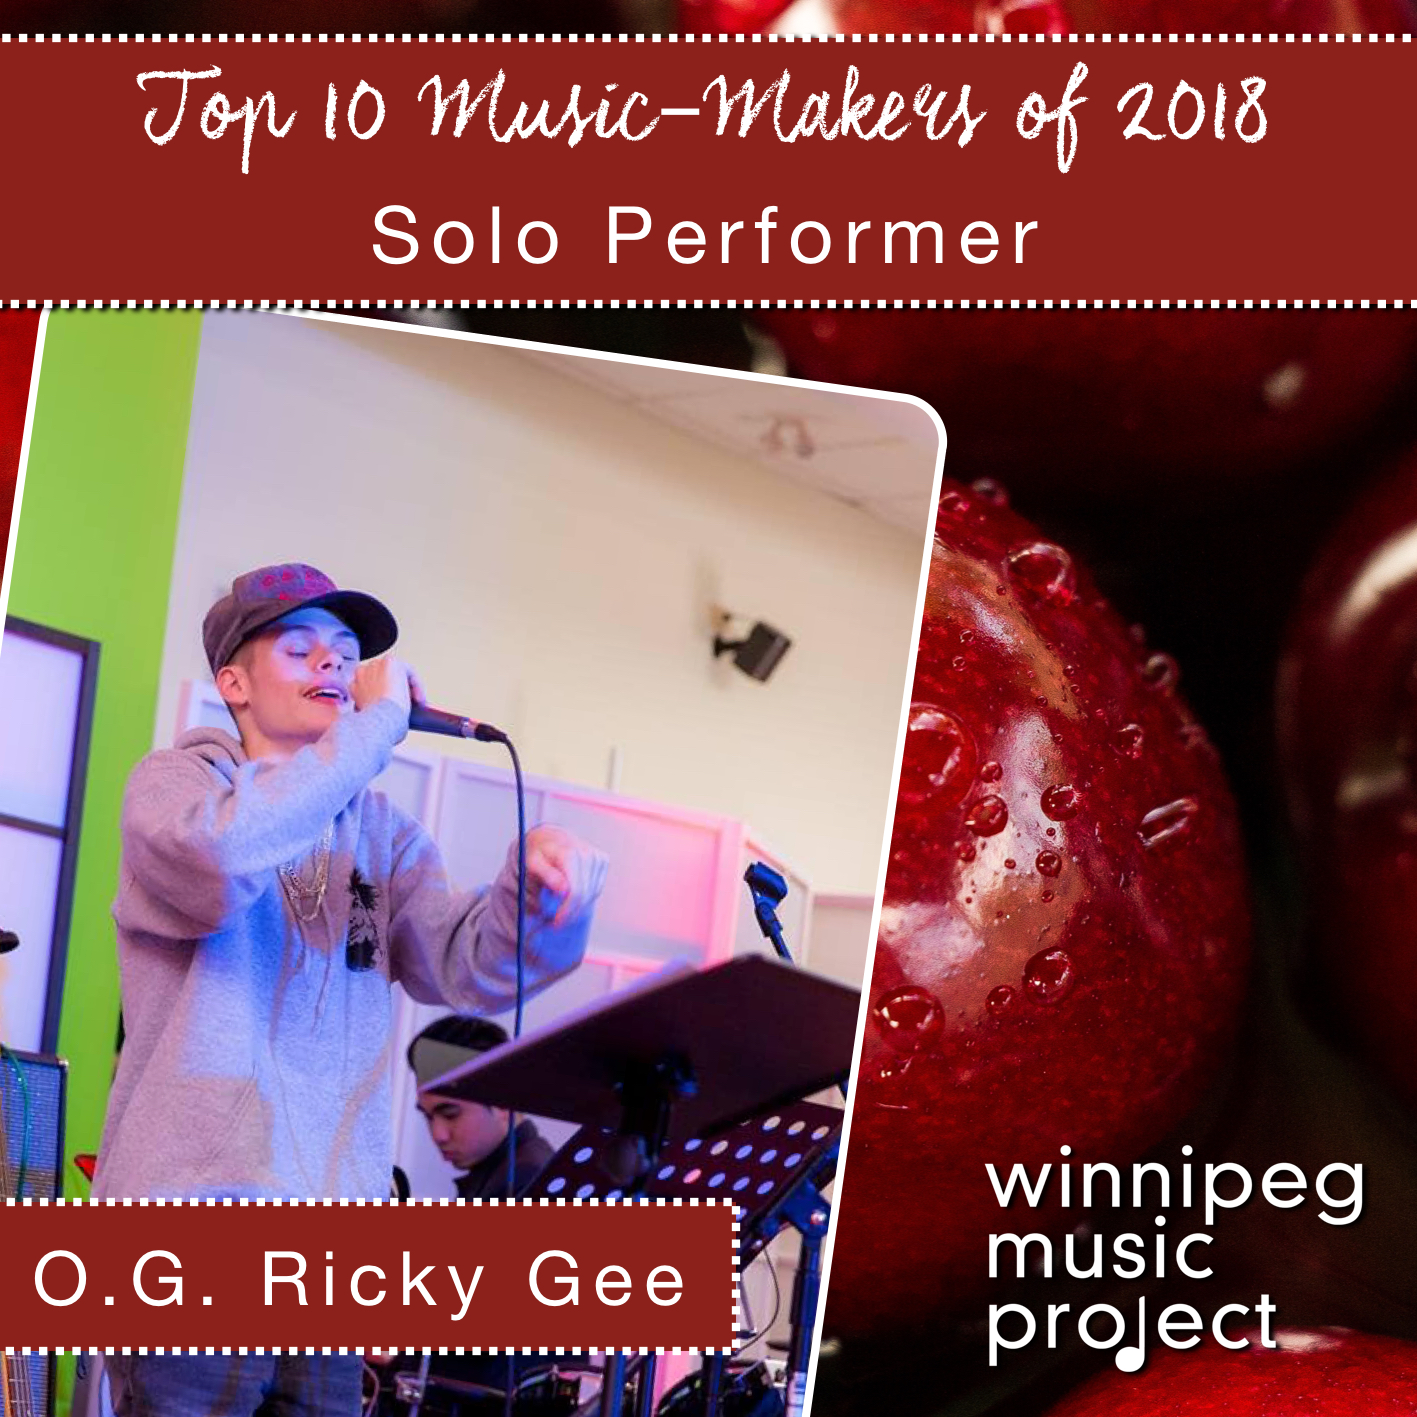 O.G. Ricky Gee | Top 10 Music Makers of 2018  | Winnipeg Music Project